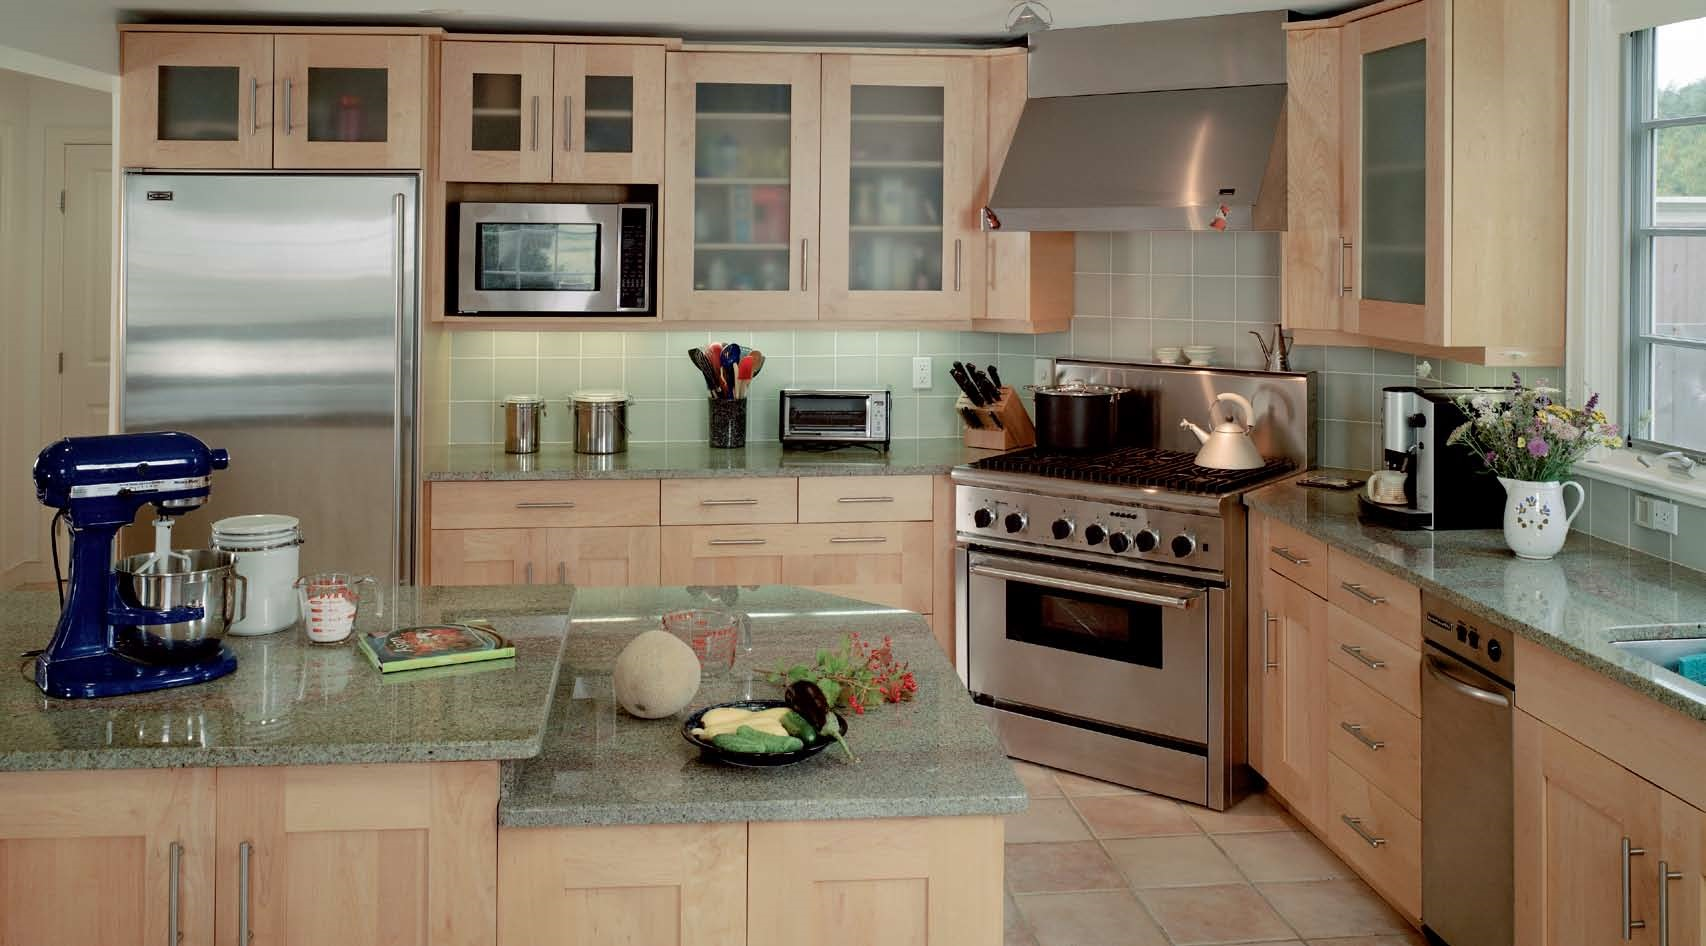 Kitchen Cabinet Refacing Nyc Re A Door Kitchen Cabinets Refacing Coupons Near Me In